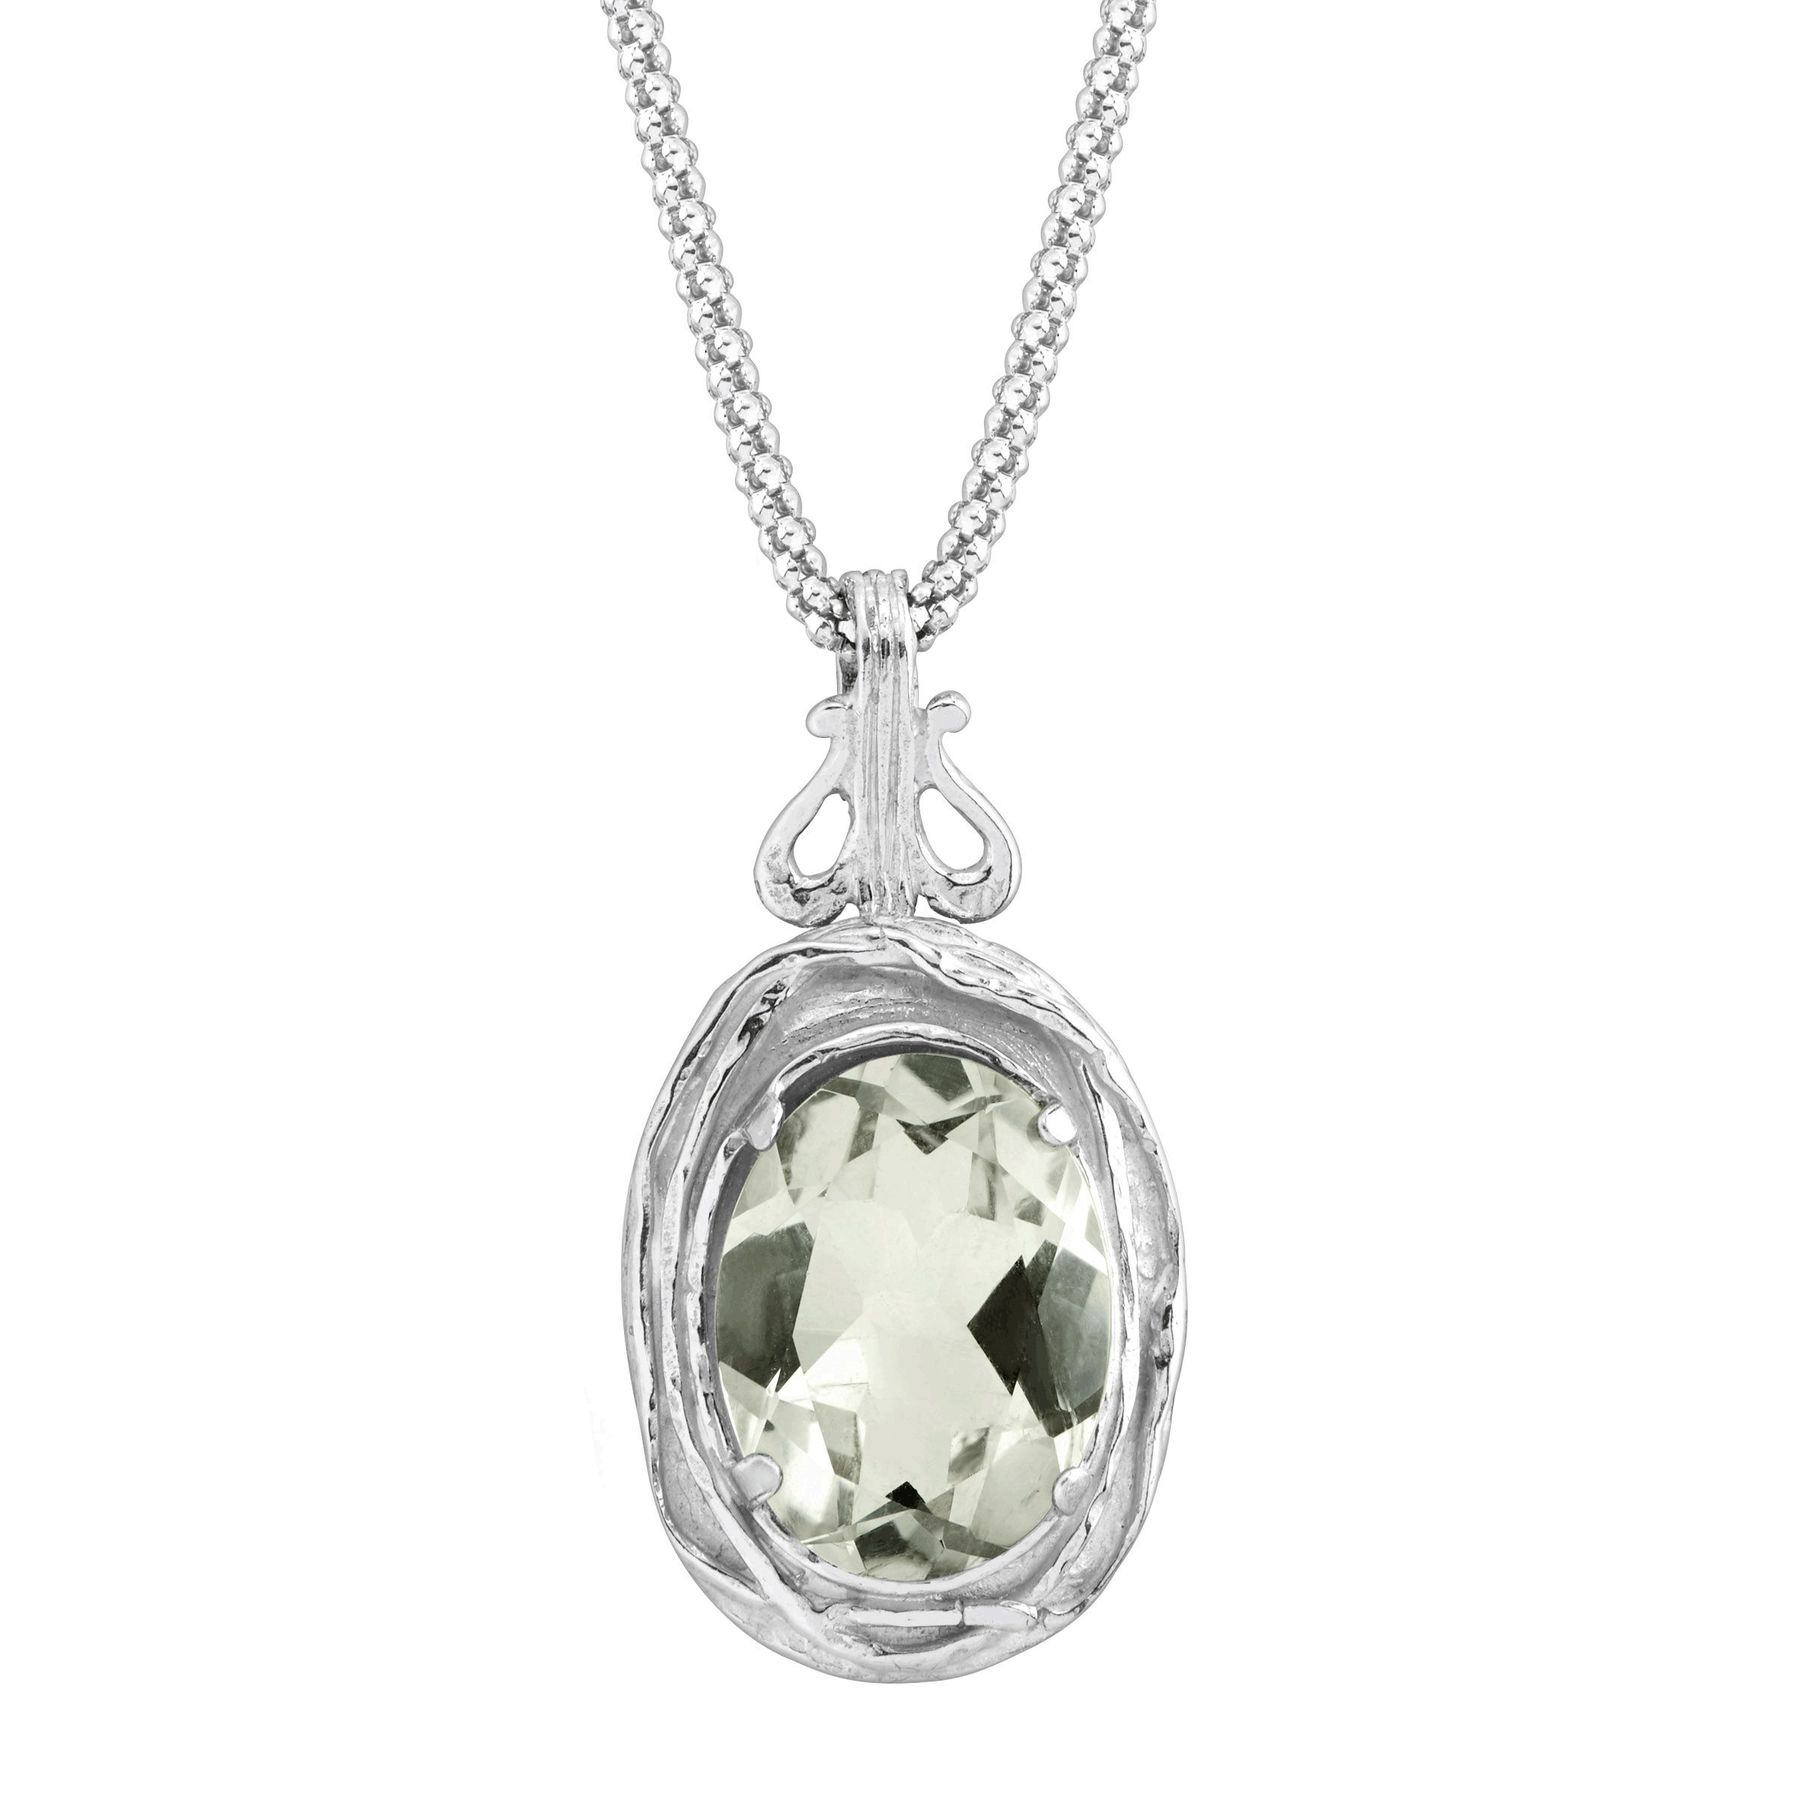 framed lunessa products necklace green amethyst